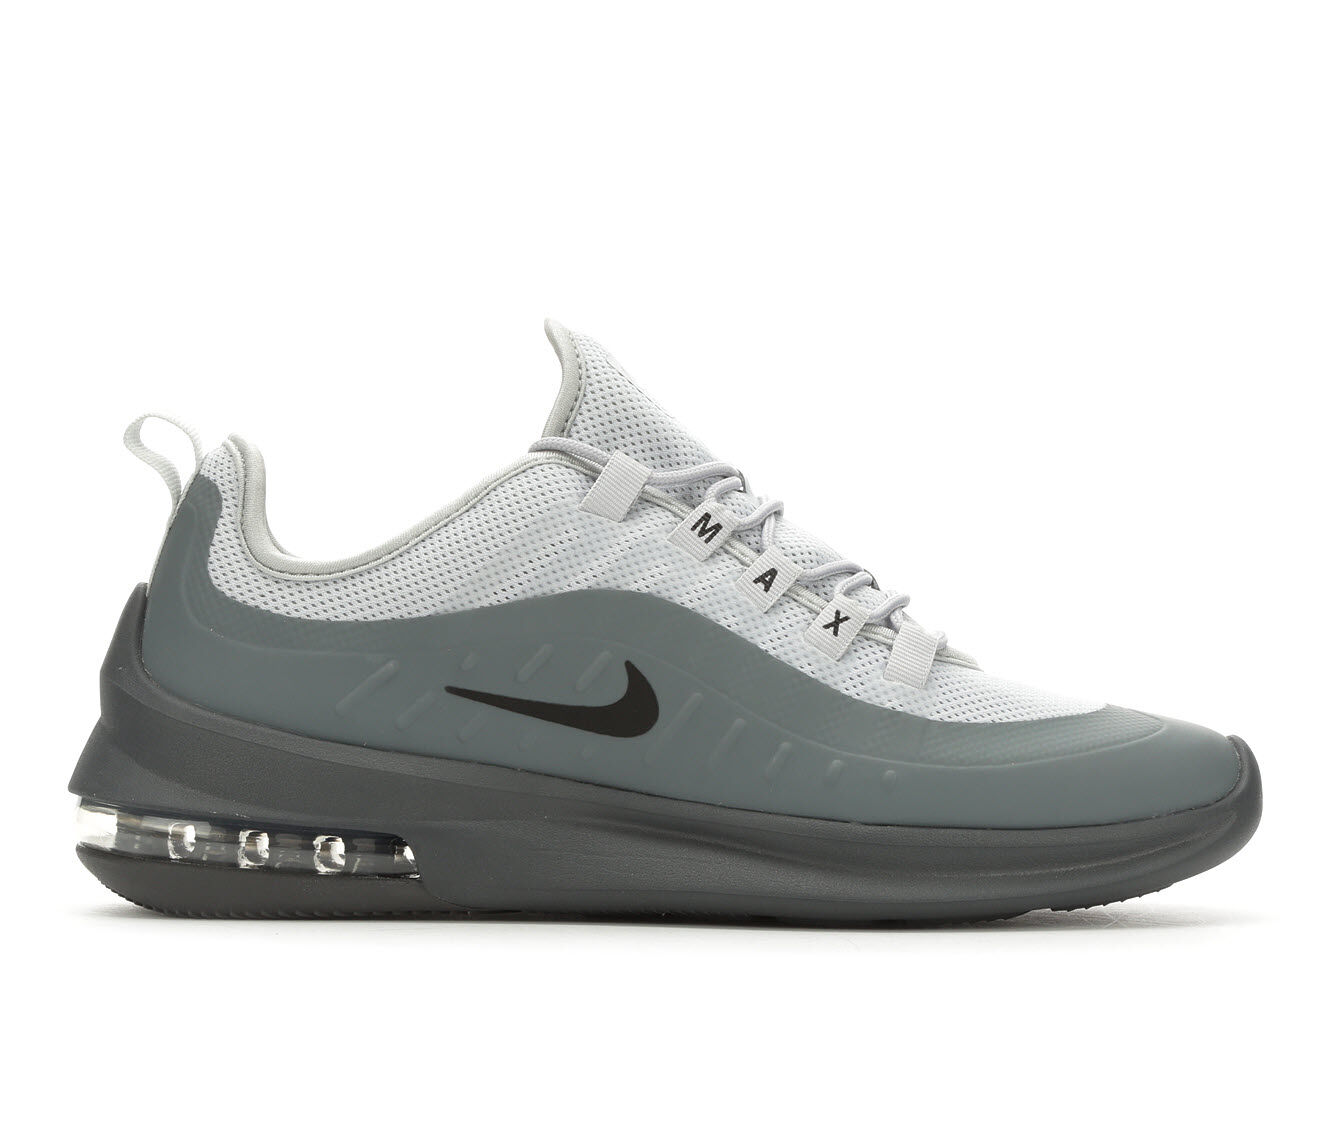 Massive discount Men's Nike Air Max Axis Running Shoes Gy/Dk Gy/Bk 007